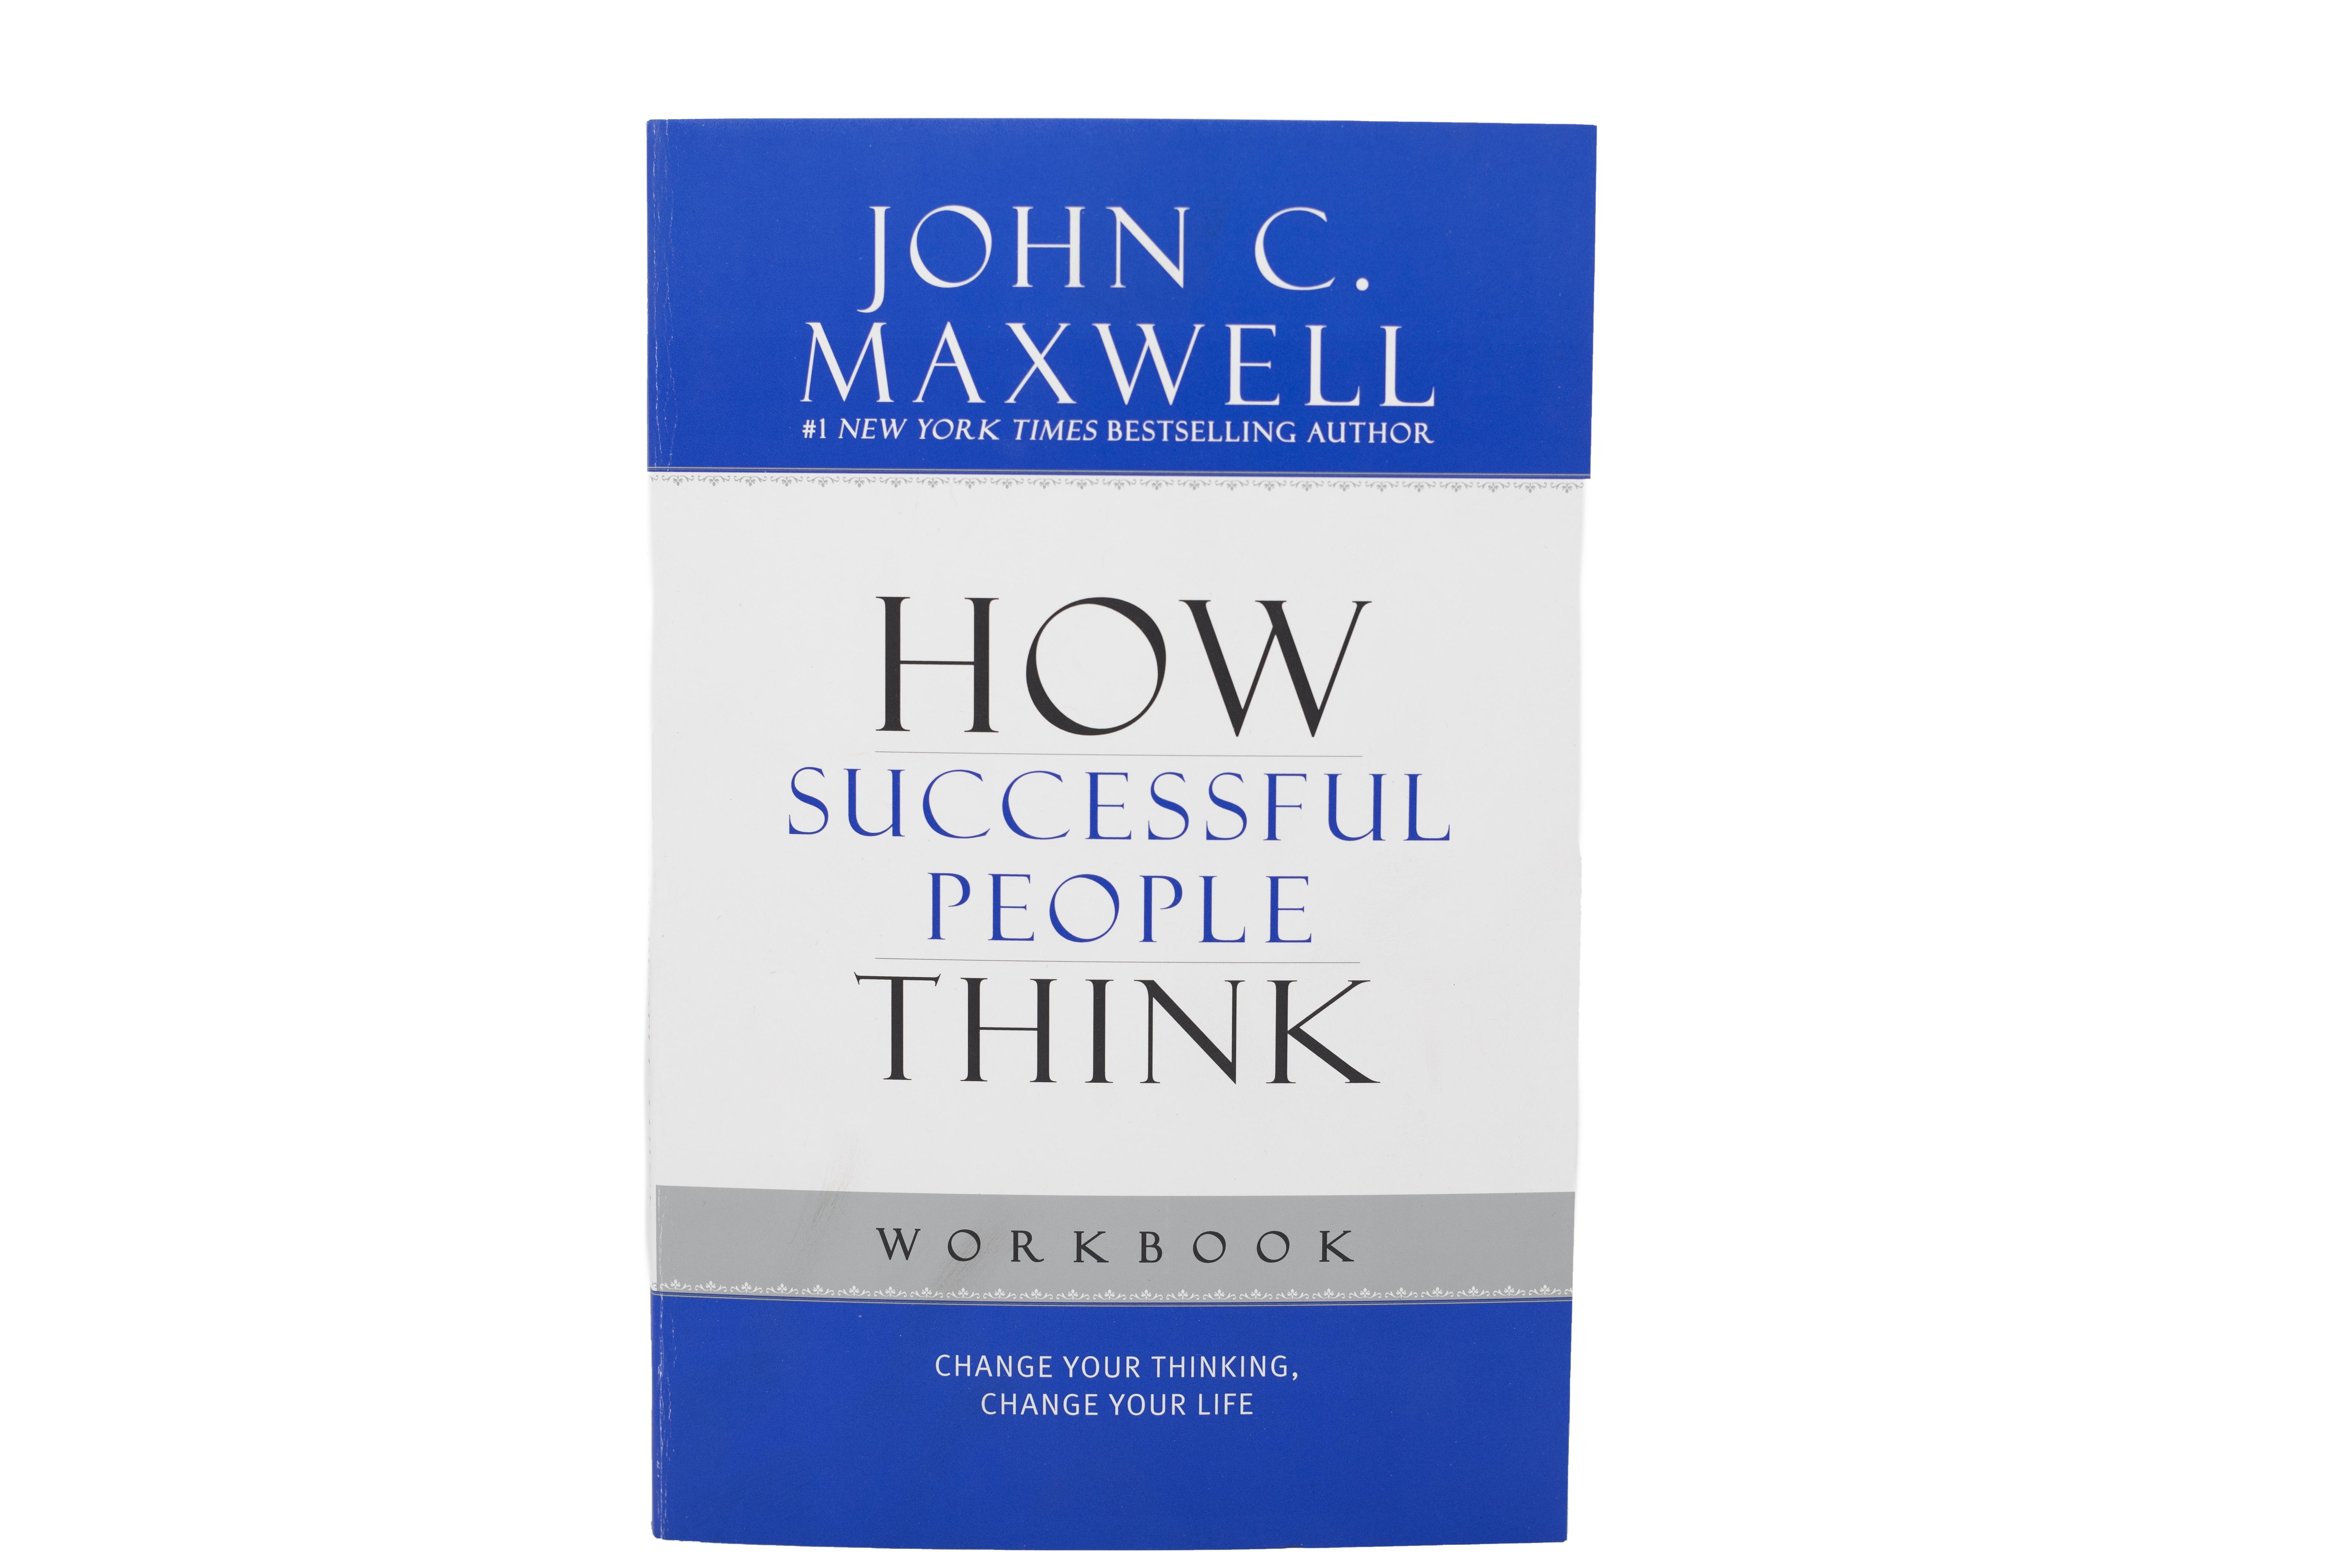 How Successful People Think Workbook [Paperback]